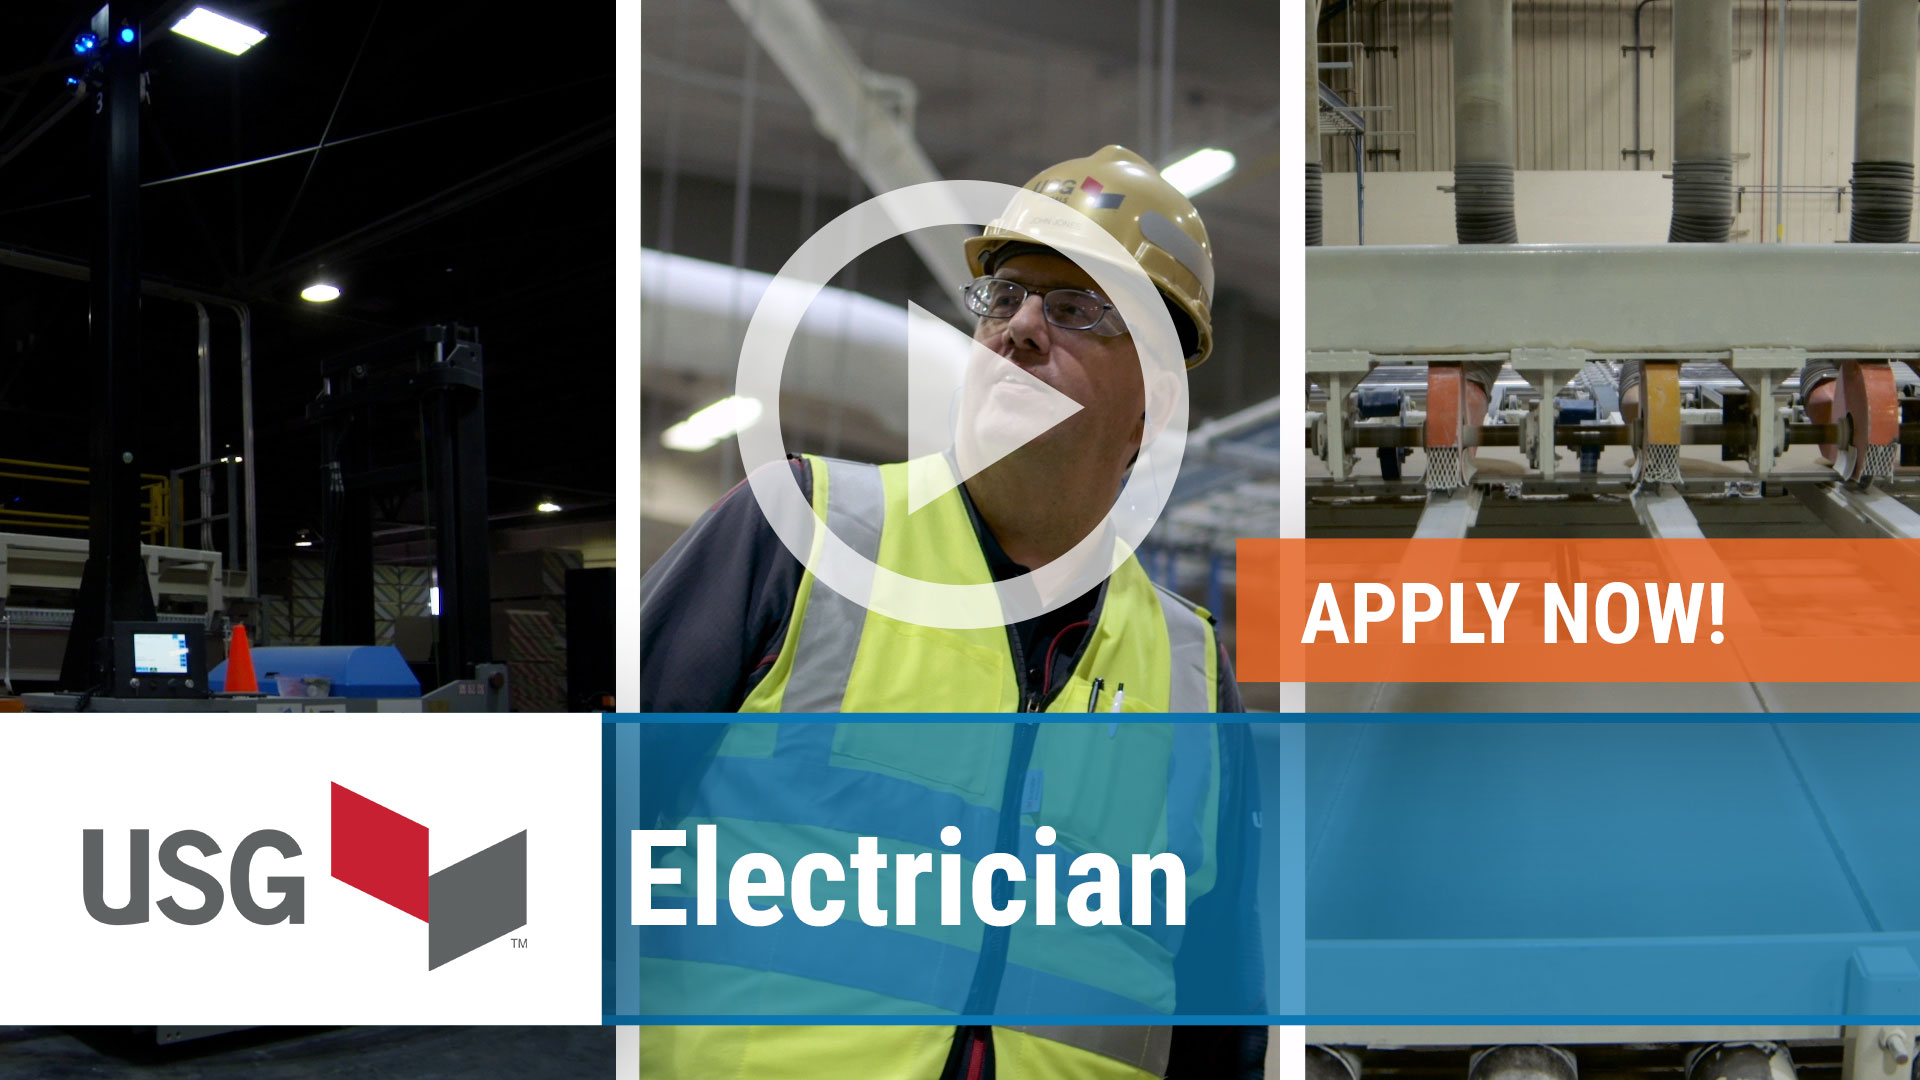 Watch our careers video for available job opening Electrician in Mediapolis, IA, USA